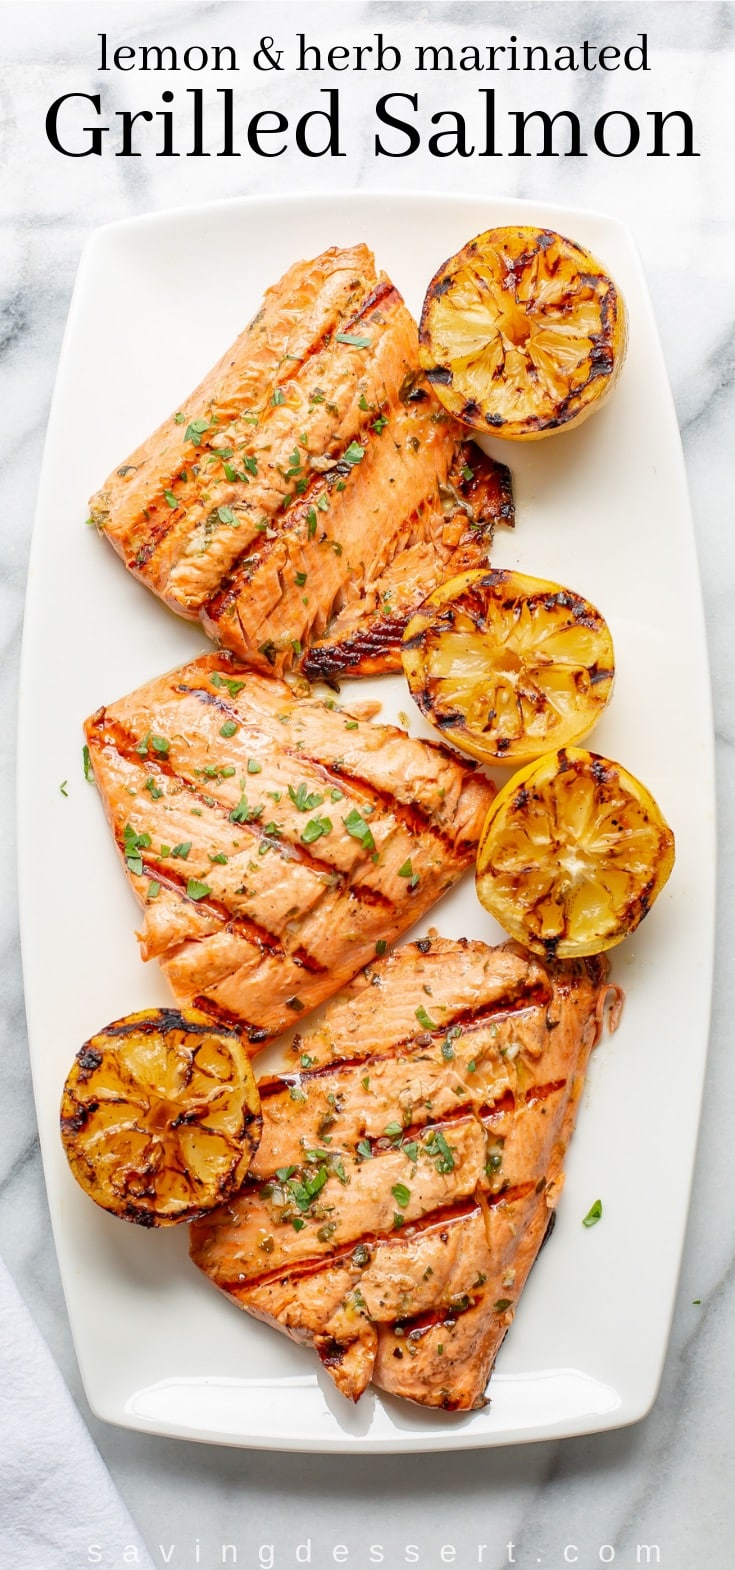 A platter with grilled salmon and lemons garnished with fresh parsley